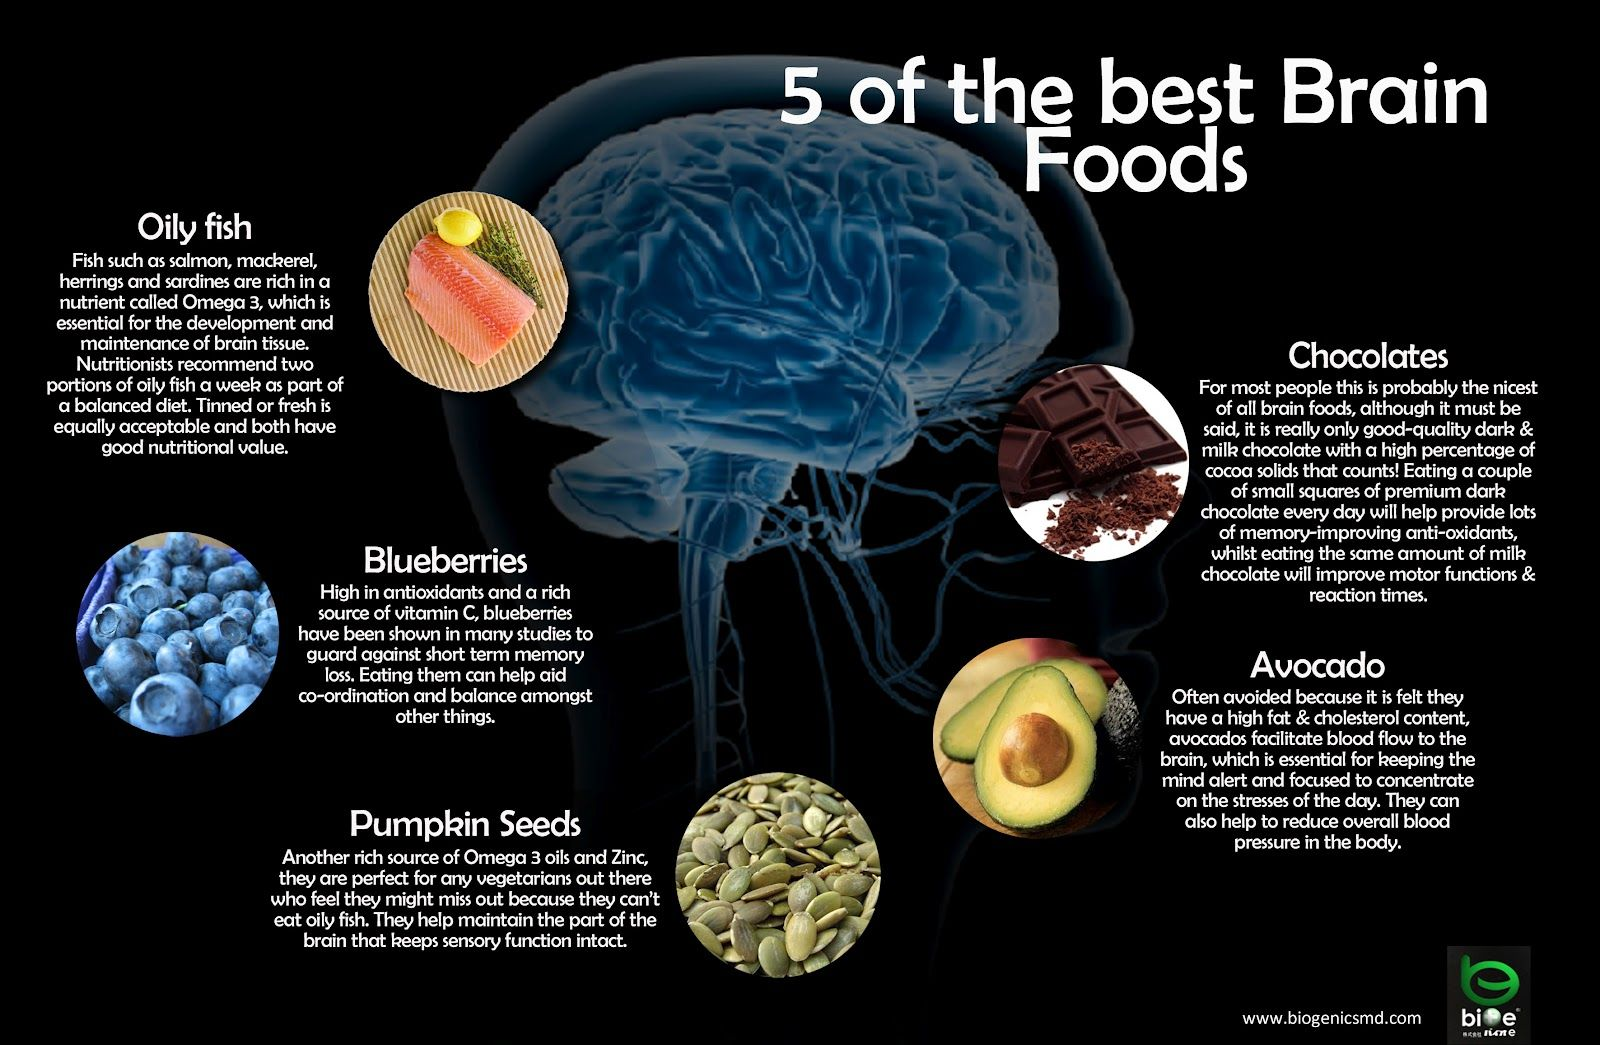 Brain Foods To Improve Your Memory And Concentration